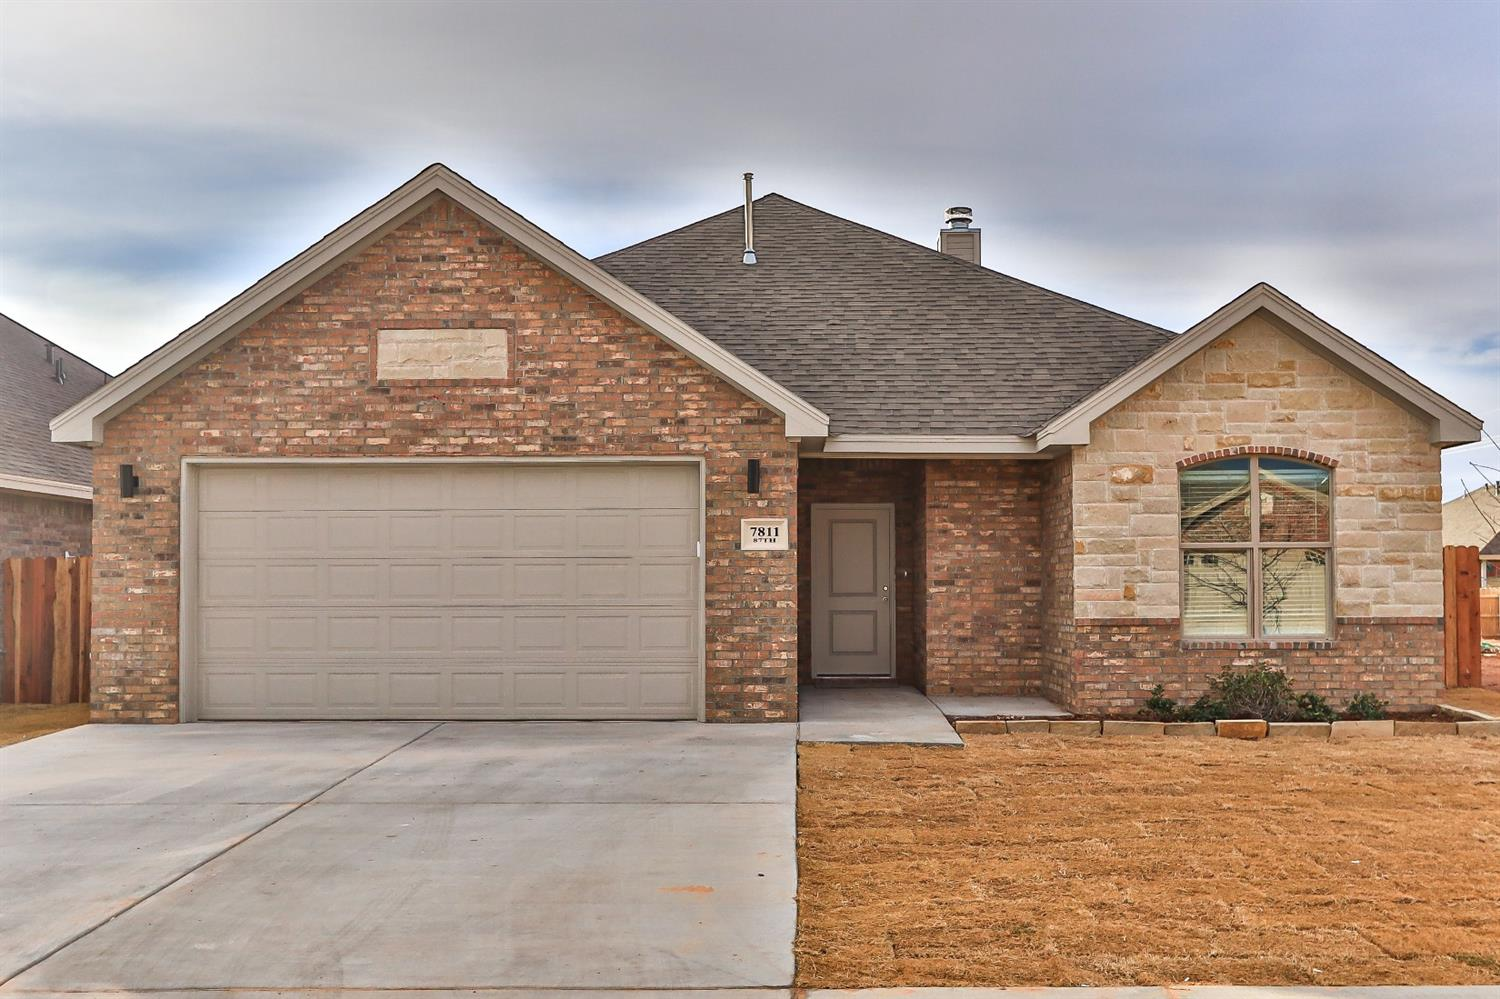 Construction complete in Cambridge Way and ready for a new owner. This 3/2/2 open concept home offers stainless steel appliances (buyer chooses gas or electric free standing range), pantry, island, quartz countertops. Isolated Master w/walk-in closet. Window coverings throughout. Landscaped, sod, fence, sprinkler system.